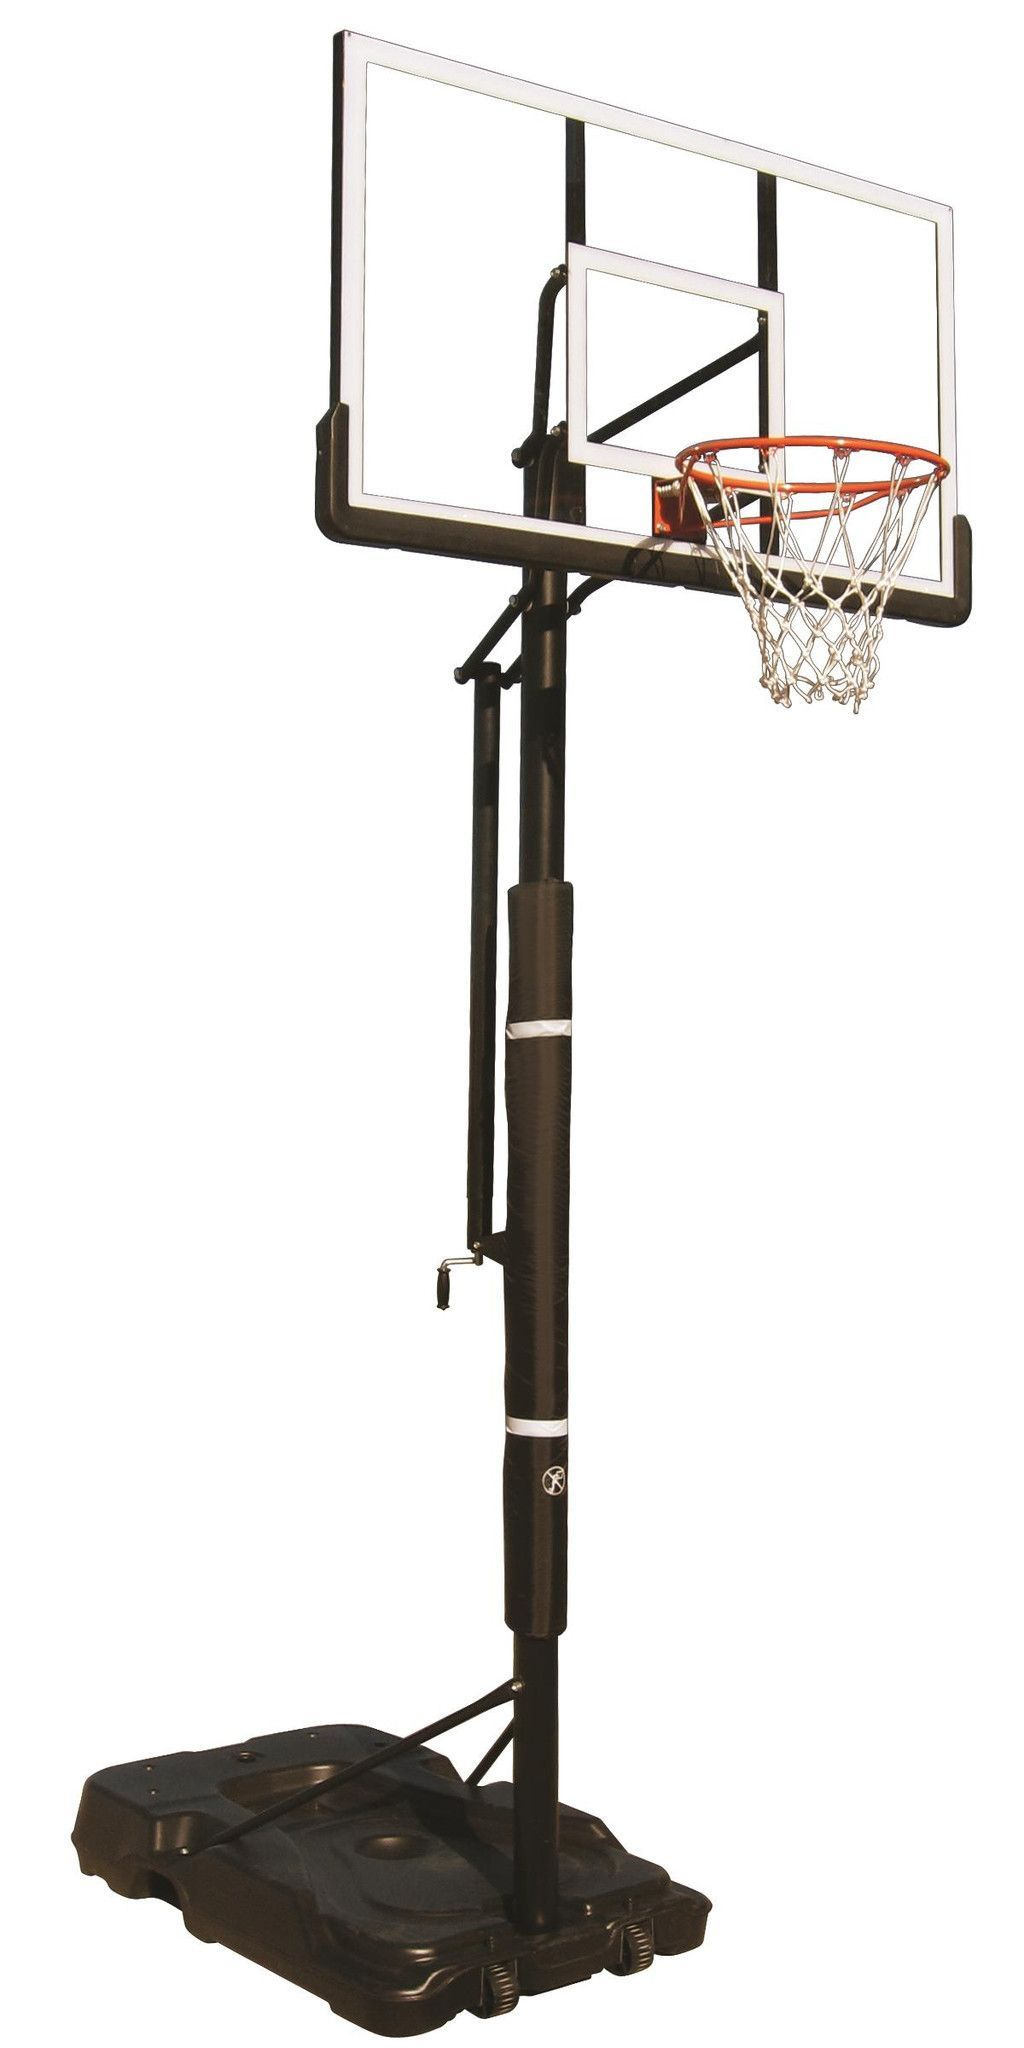 First Team Eliminator Portable Adjustable Basketball Hoop 60 Inch Acrylic From Nj Swingsets Adjustable Basketball Hoop Portable Basketball Hoop Basketball Hoop